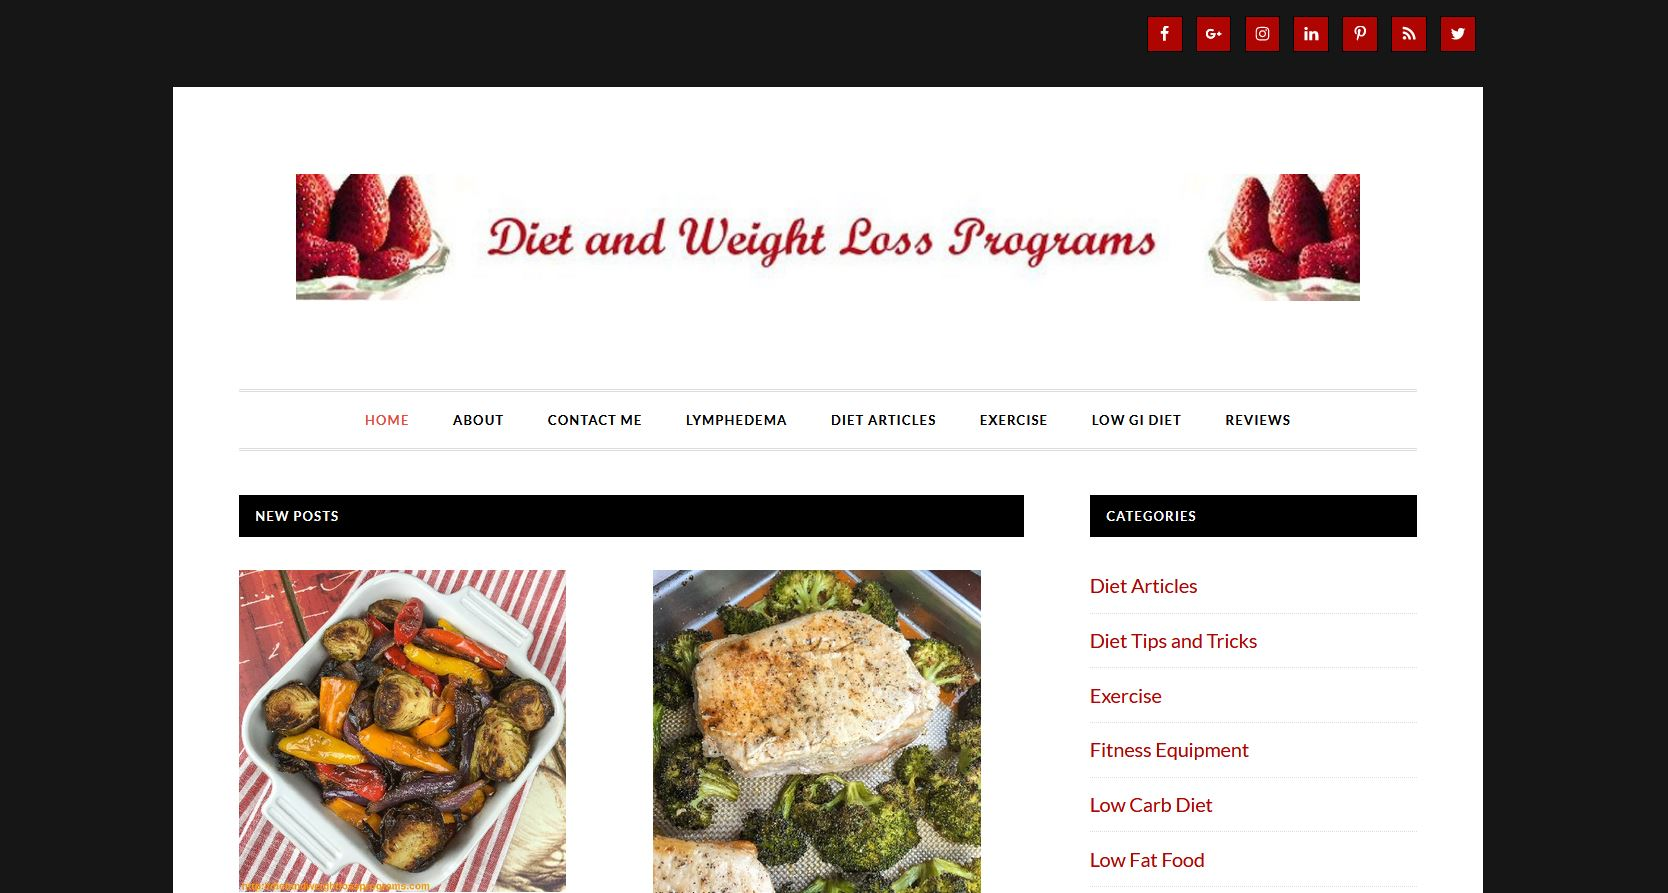 diet and weight loss programs